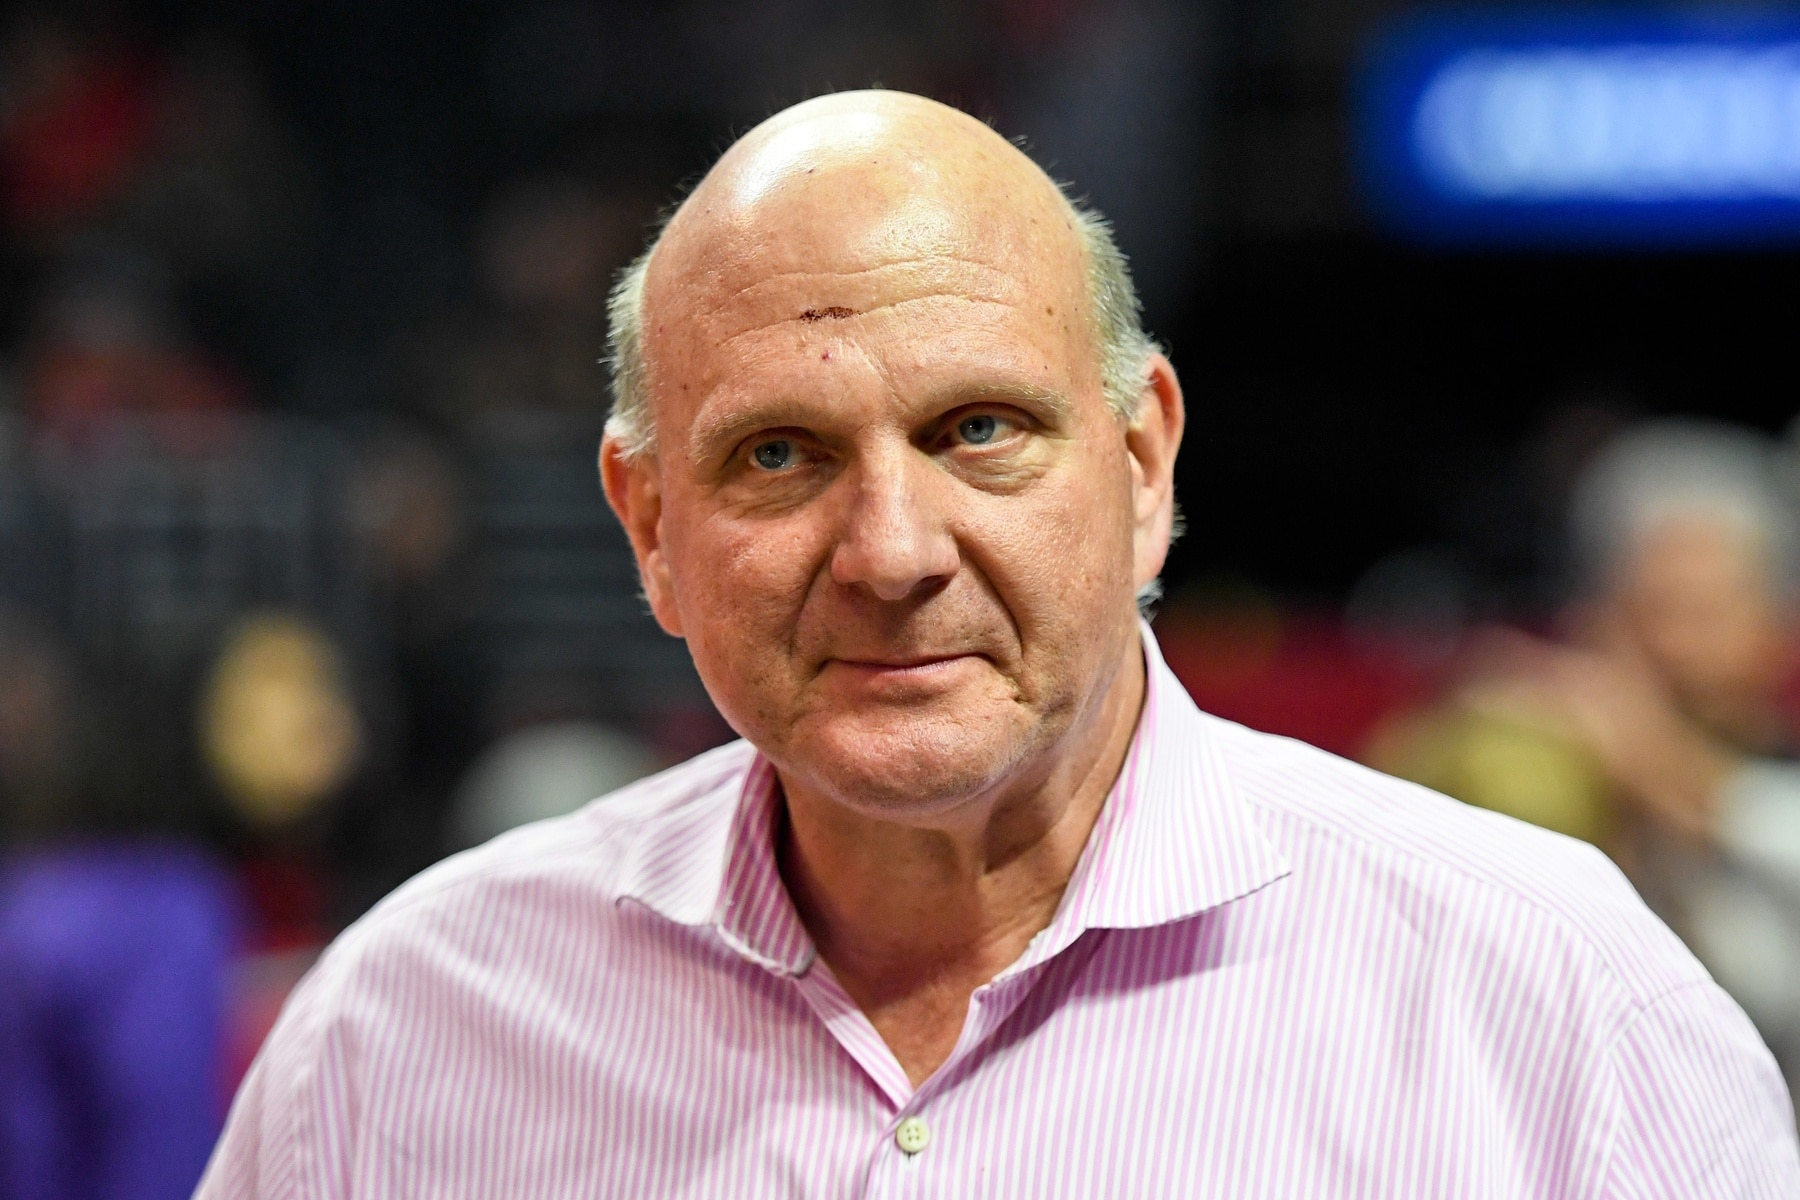 Nov 9, 2016; Los Angeles, CA, USA; Los Angeles Clippers owner Steve Ballmer prior to a NBA basketball game between the Los Angeles Clippers and the Portland Trail Blazers at Staples Center. Mandatory Credit: Kirby Lee-USA TODAY Sports